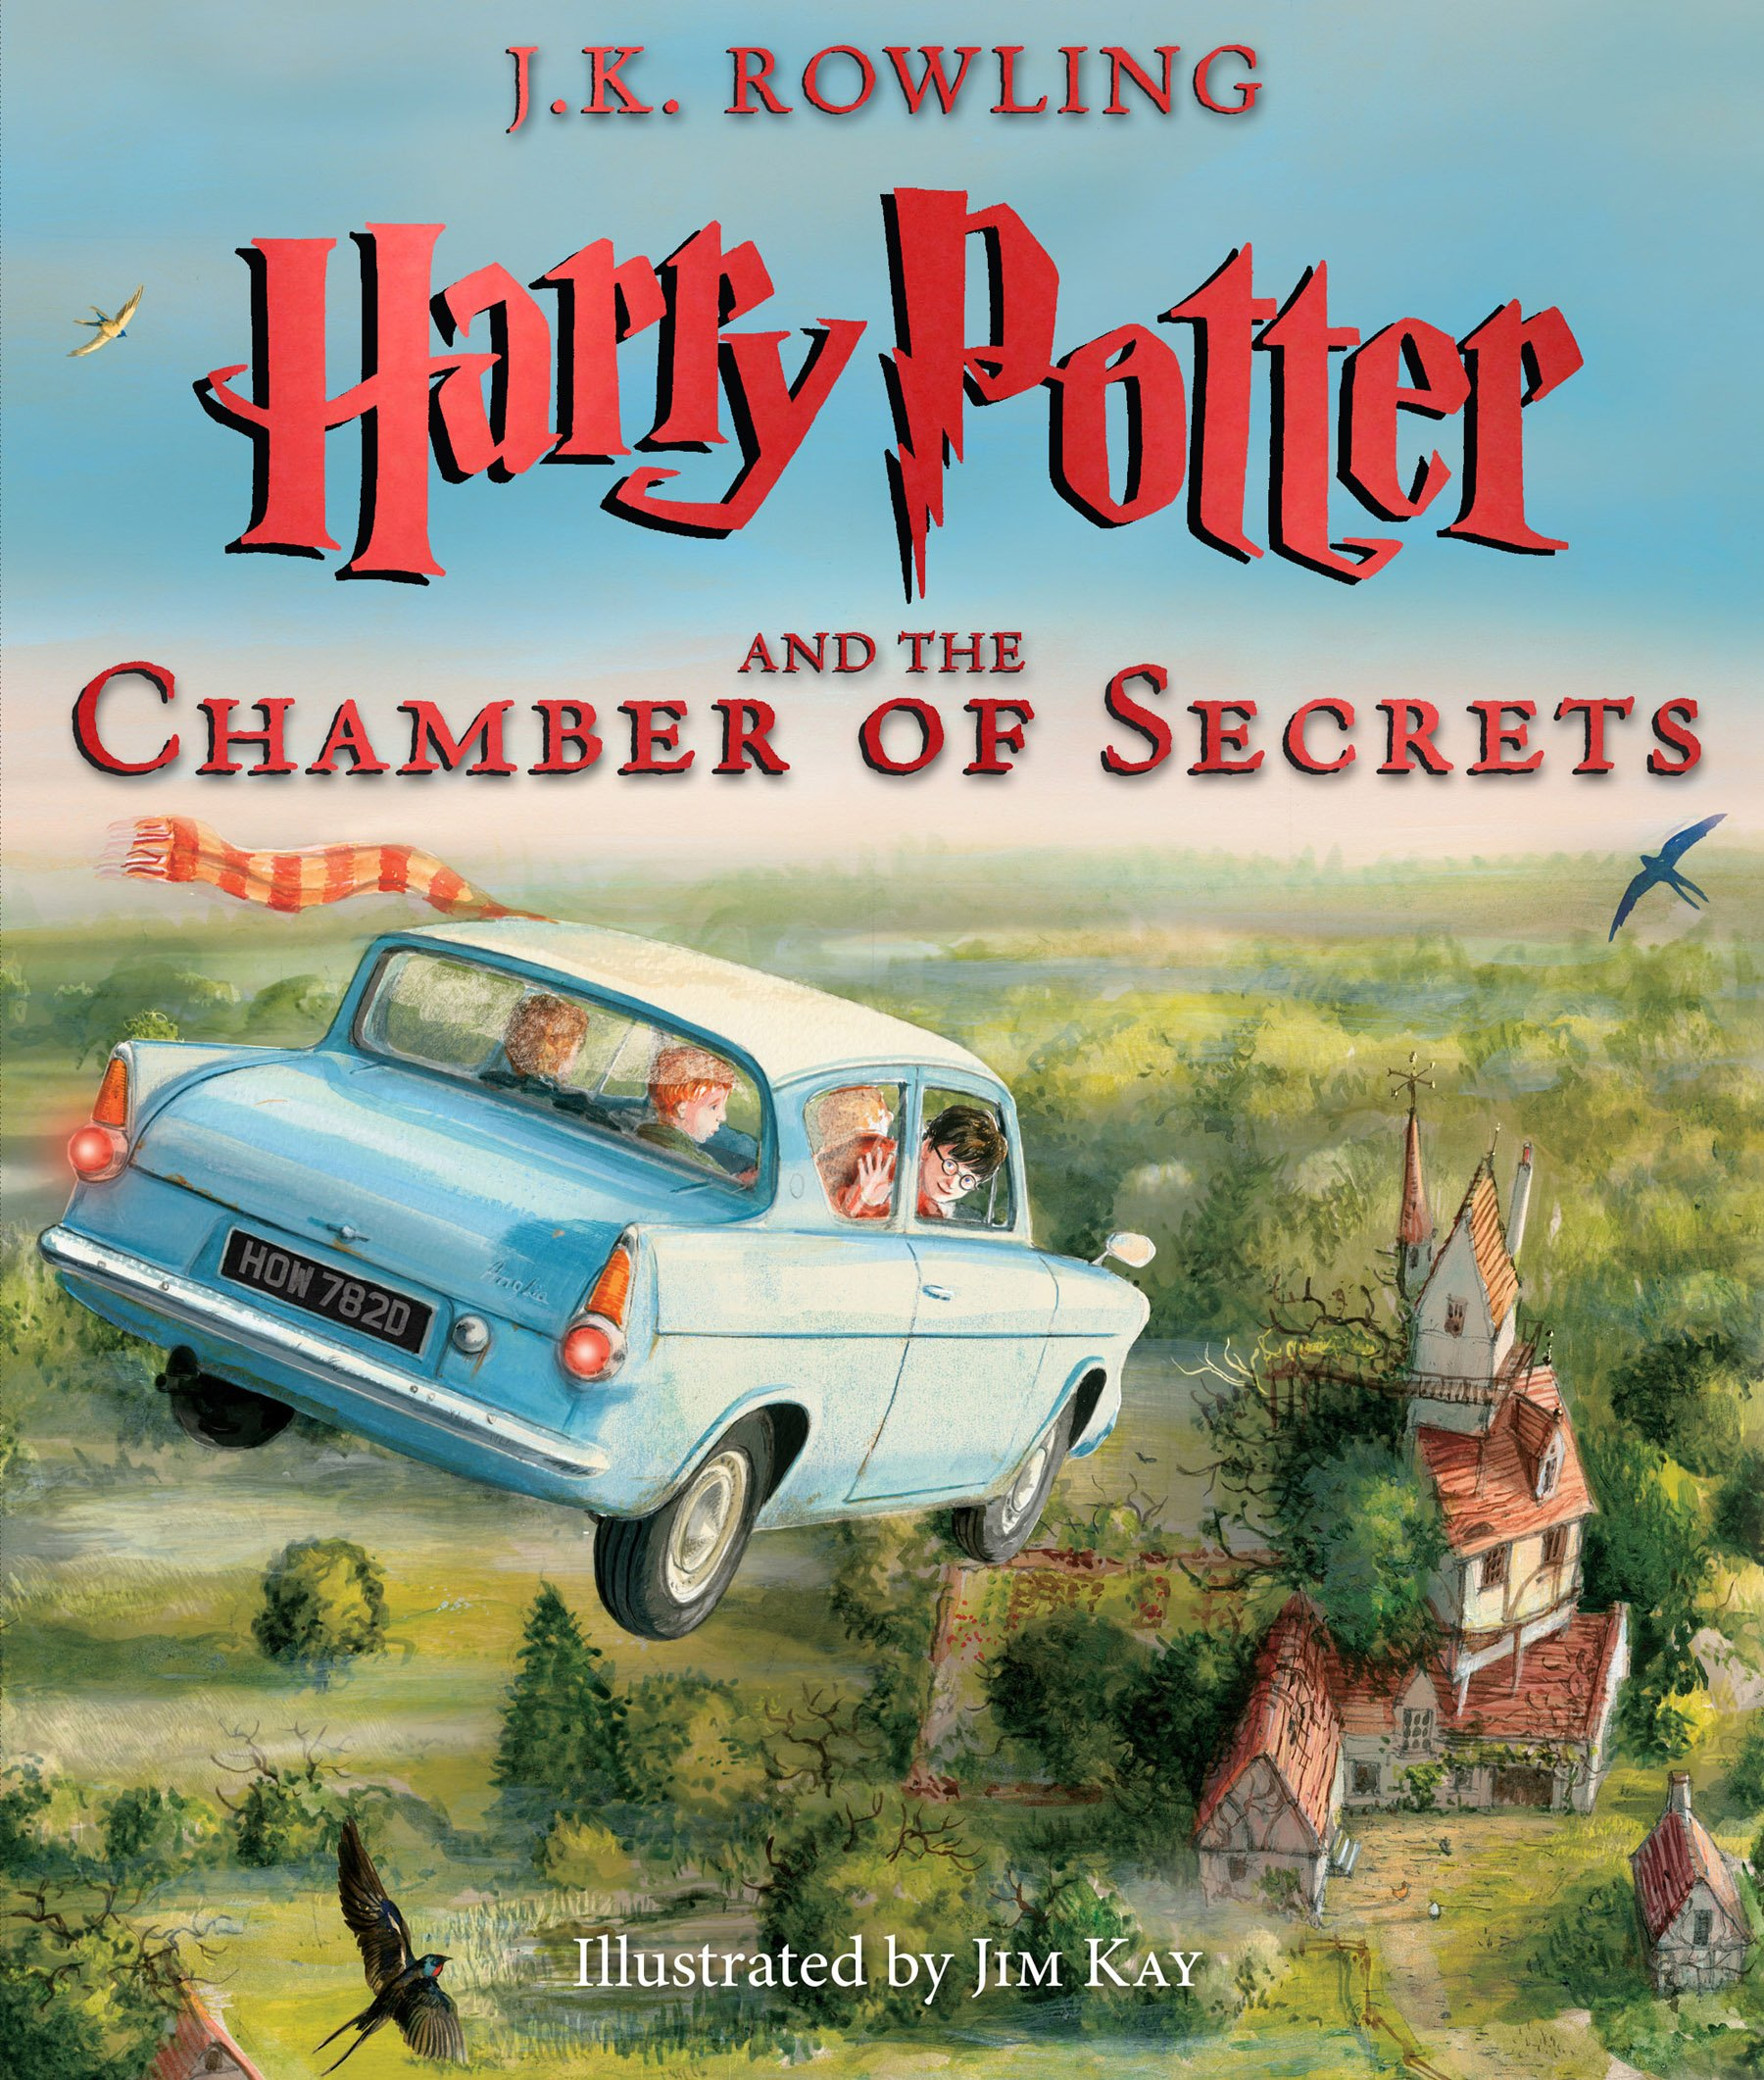 Harry Potter and the Chamber of Secrets: The Illustrated Edition (Harry Potter, Book 2) ISBN-13 9780545791328